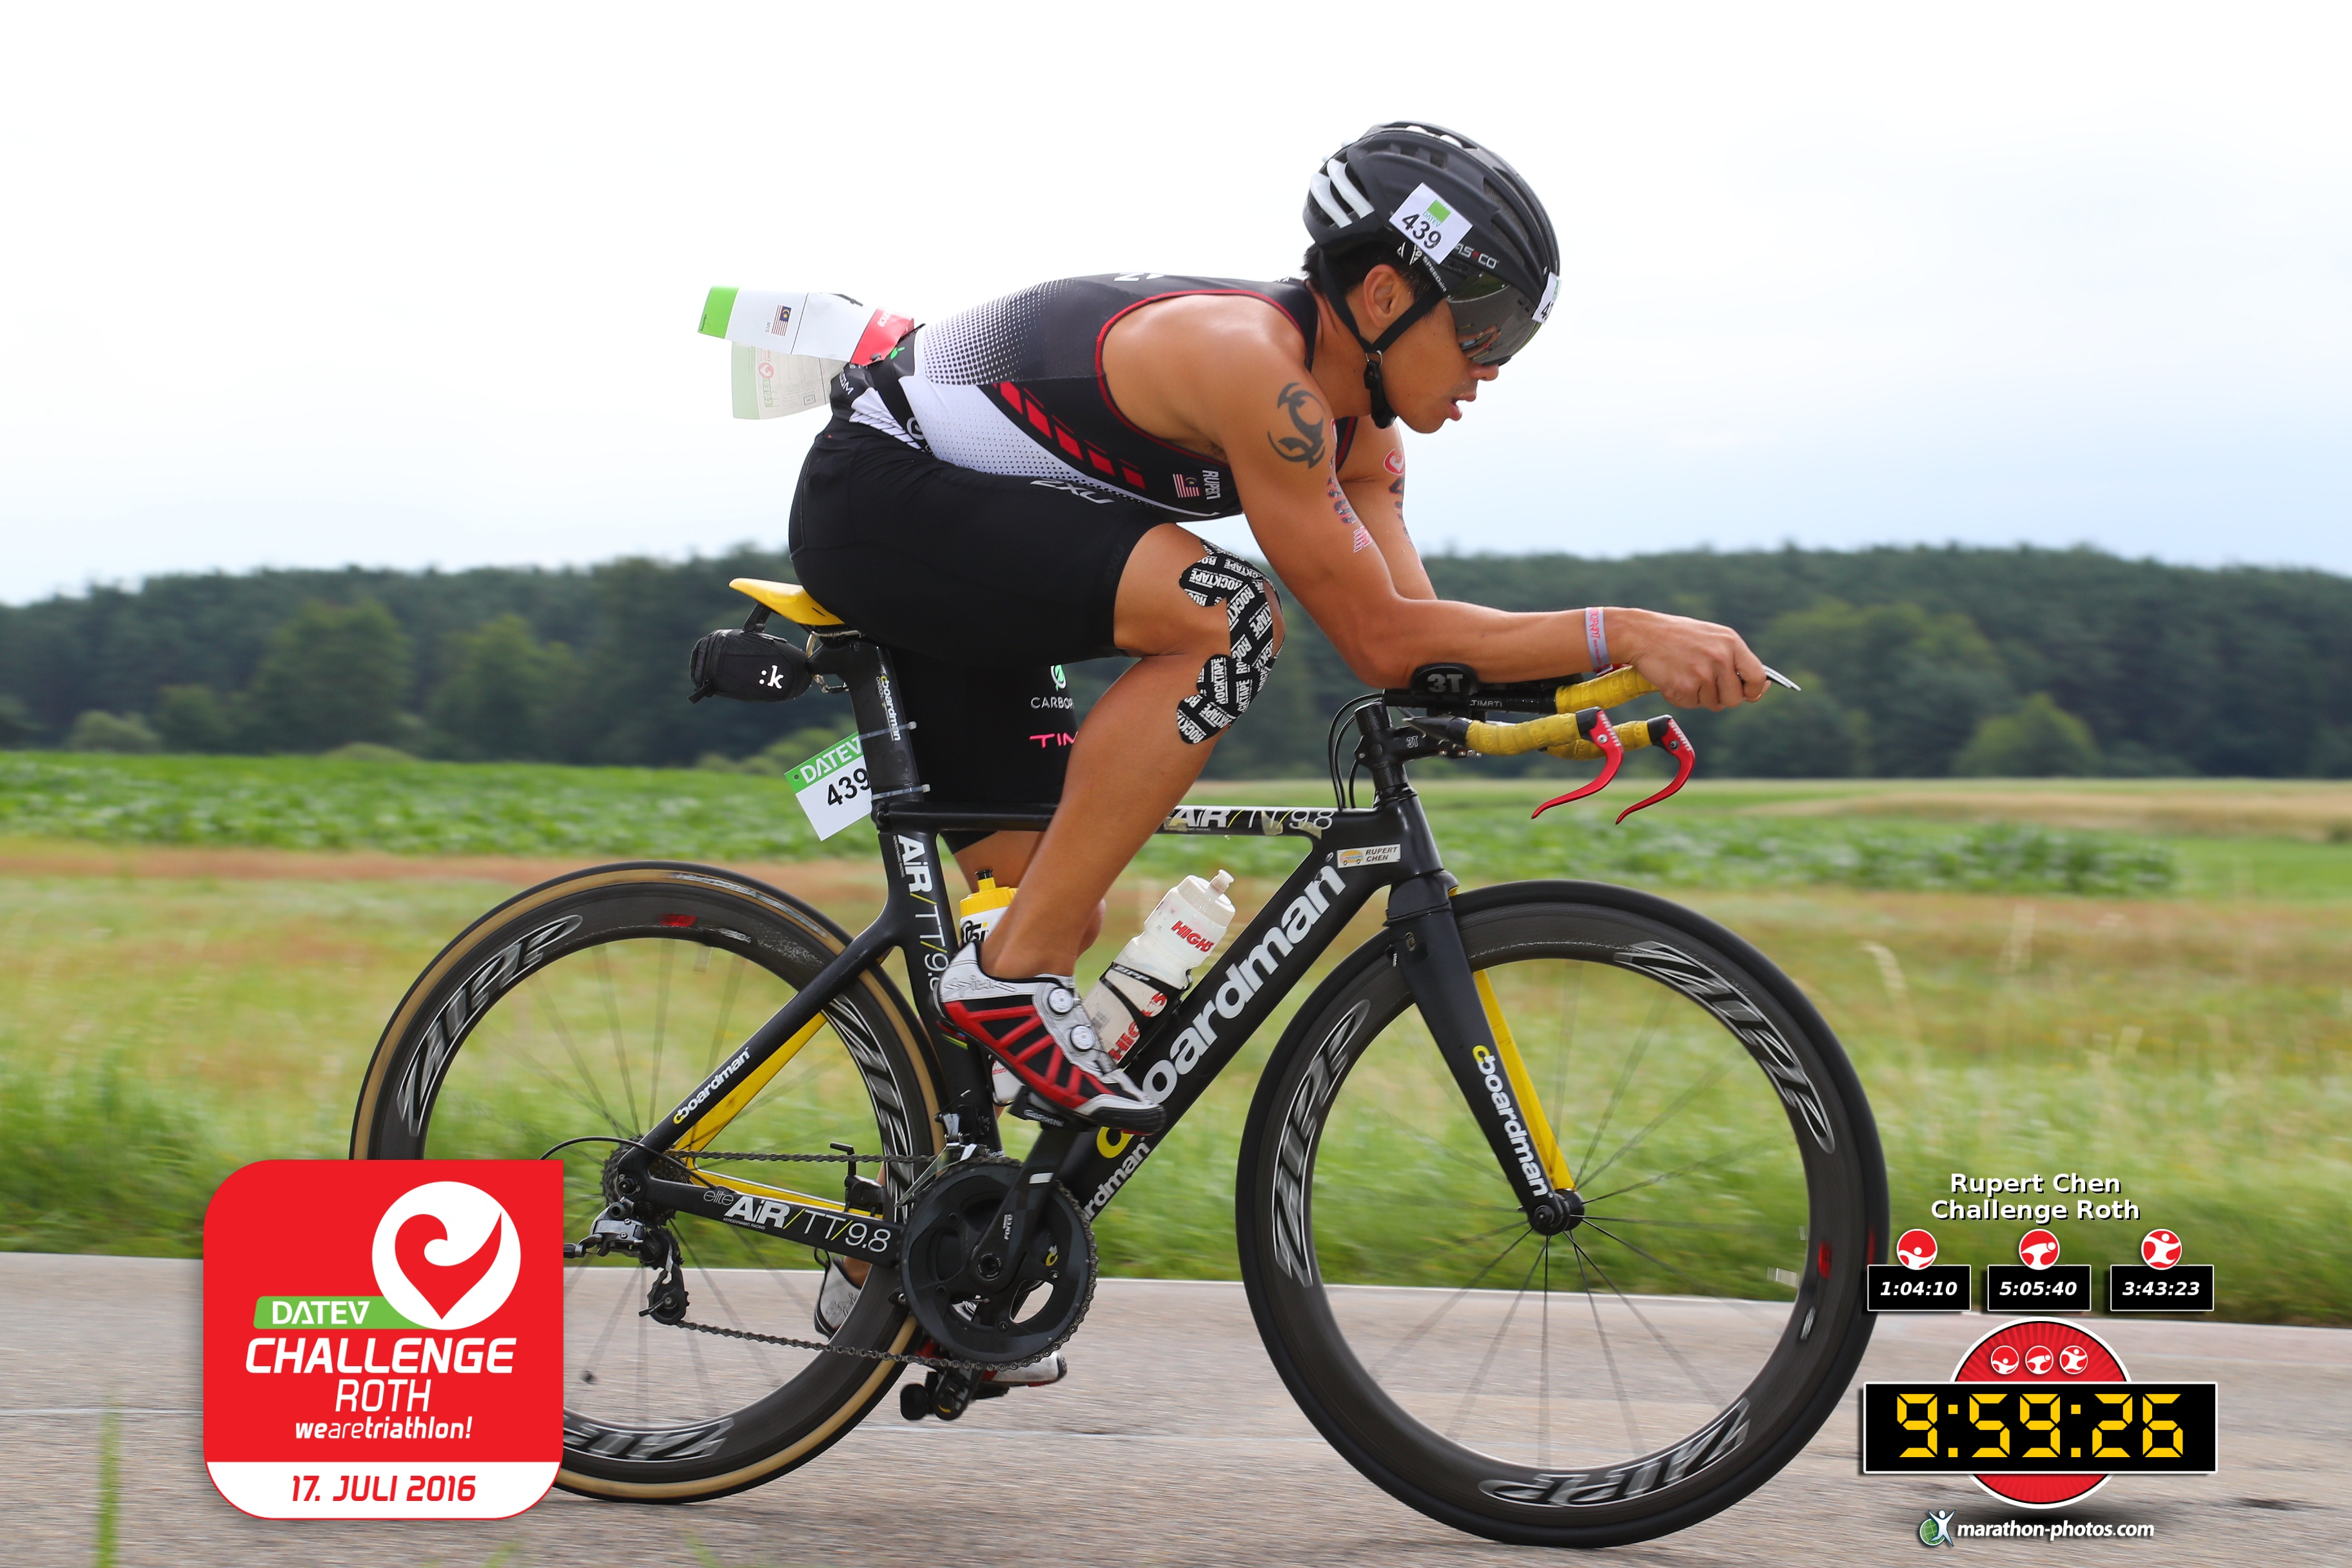 Rupert came close to beating the Malaysian triathlon record at Challenge Roth, Germany. (ChallengeRoth)